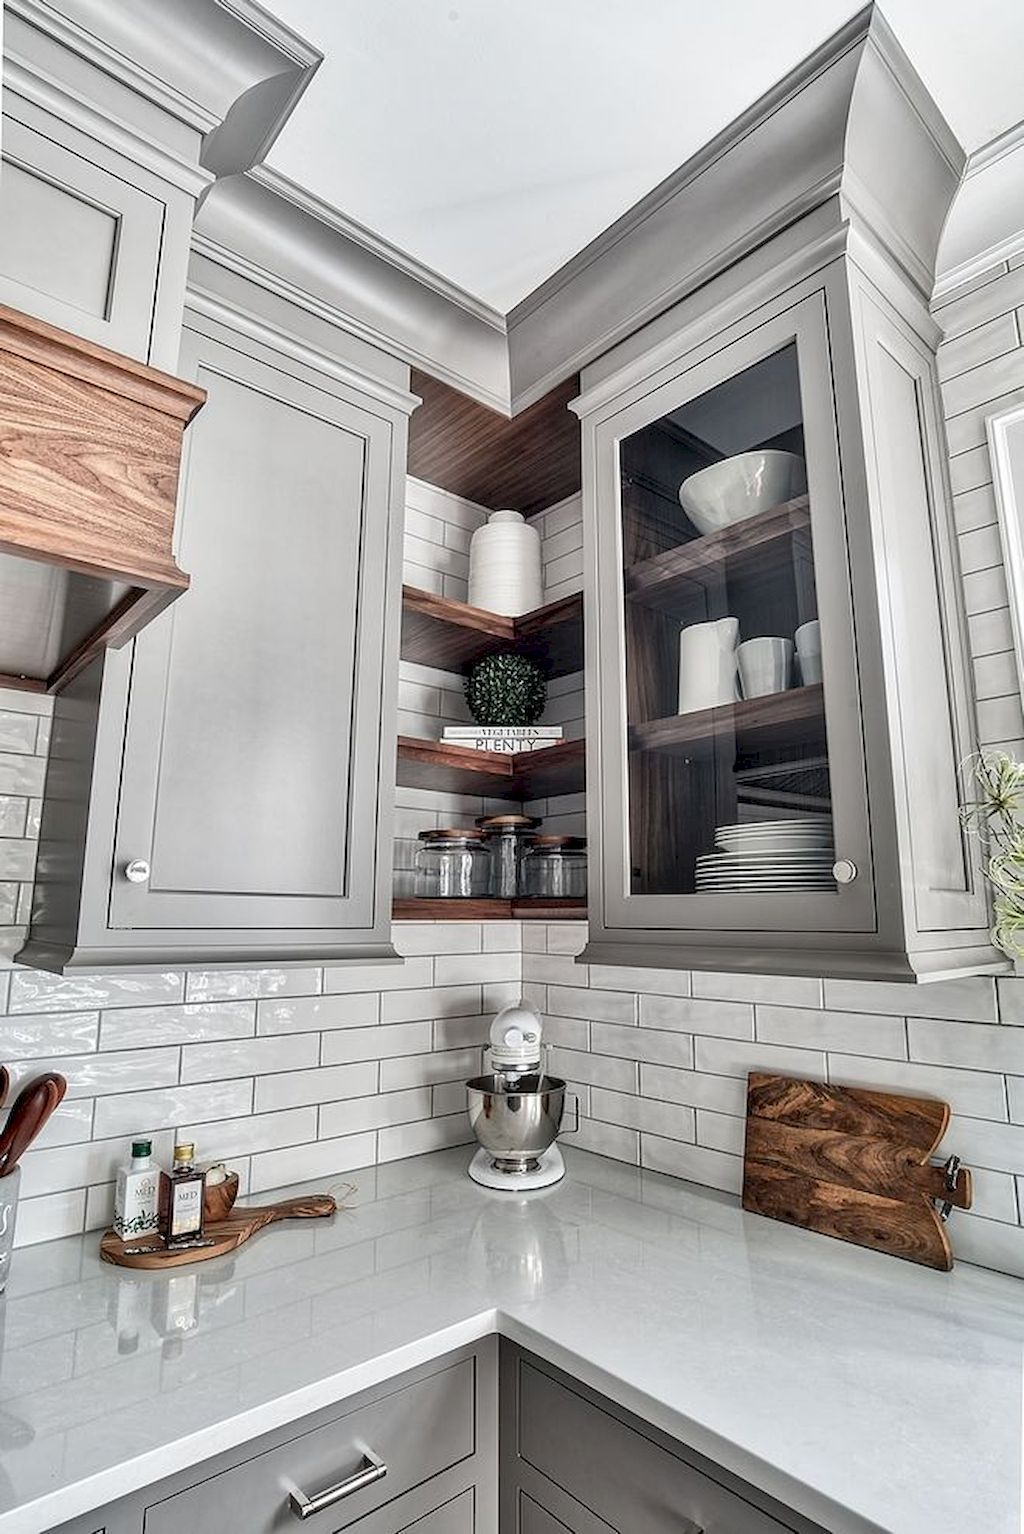 Wood Kitchen Cabinets An Investment To Awesome Kitchen Home To Z Neutral Kitchen Designs Kitchen Design Grey Kitchen Designs Kitchen cabinets and shelves